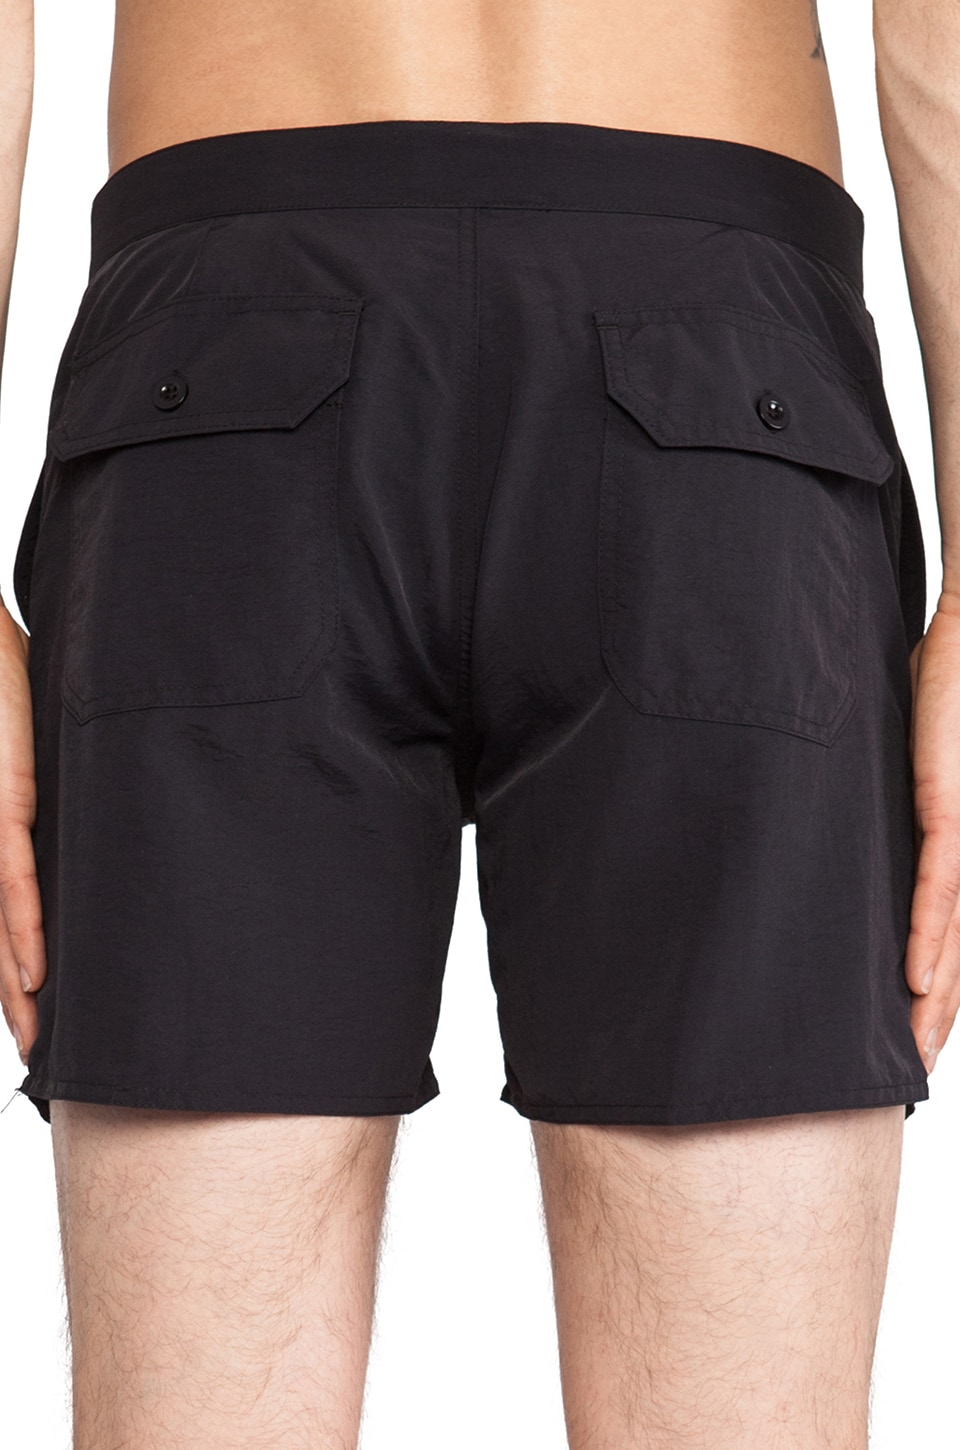 "Obey Inlet II Street Trunk 5"" Inseam in Black"